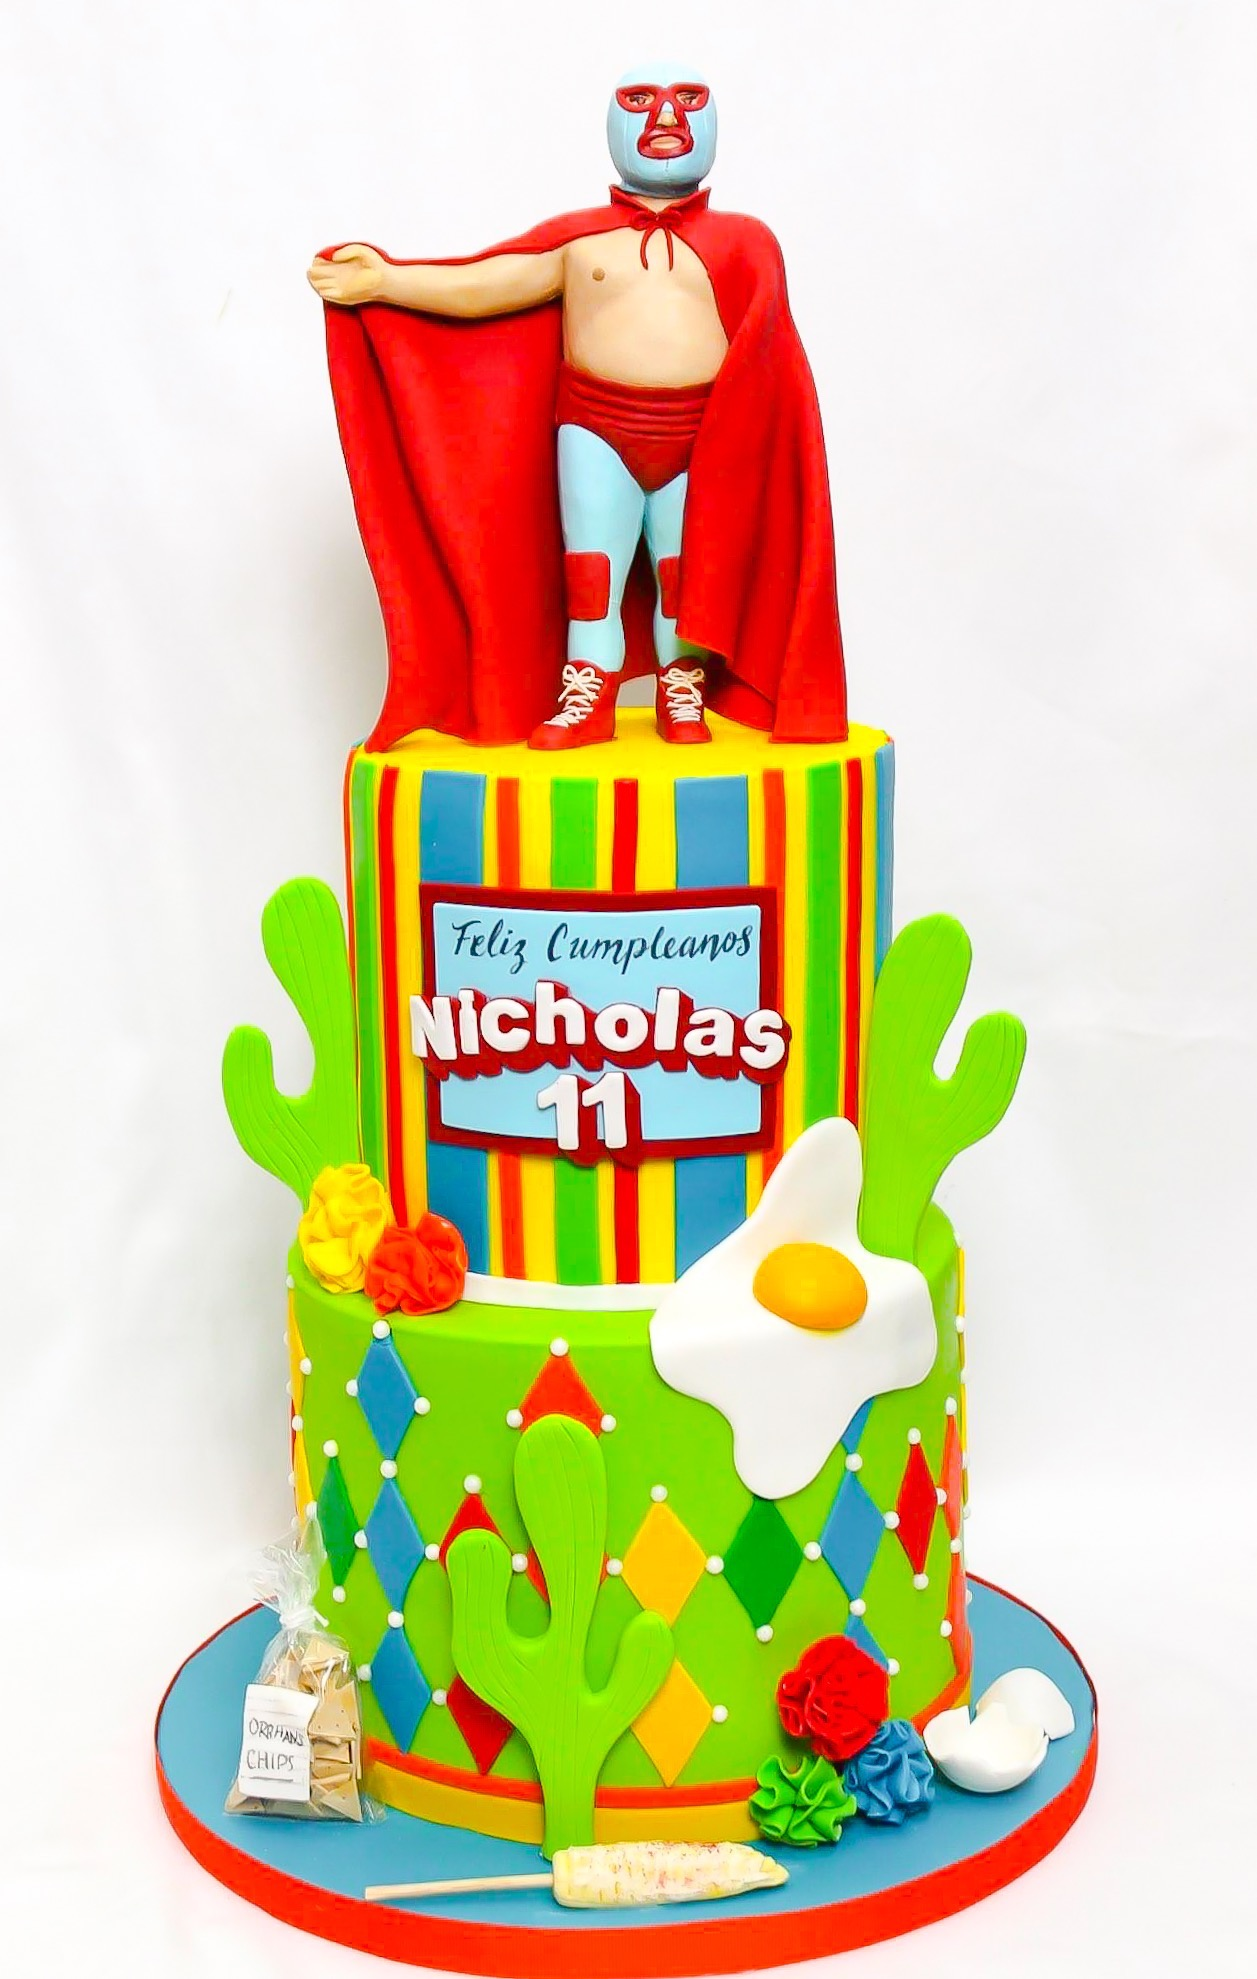 Nacho Libre themed birthday cake